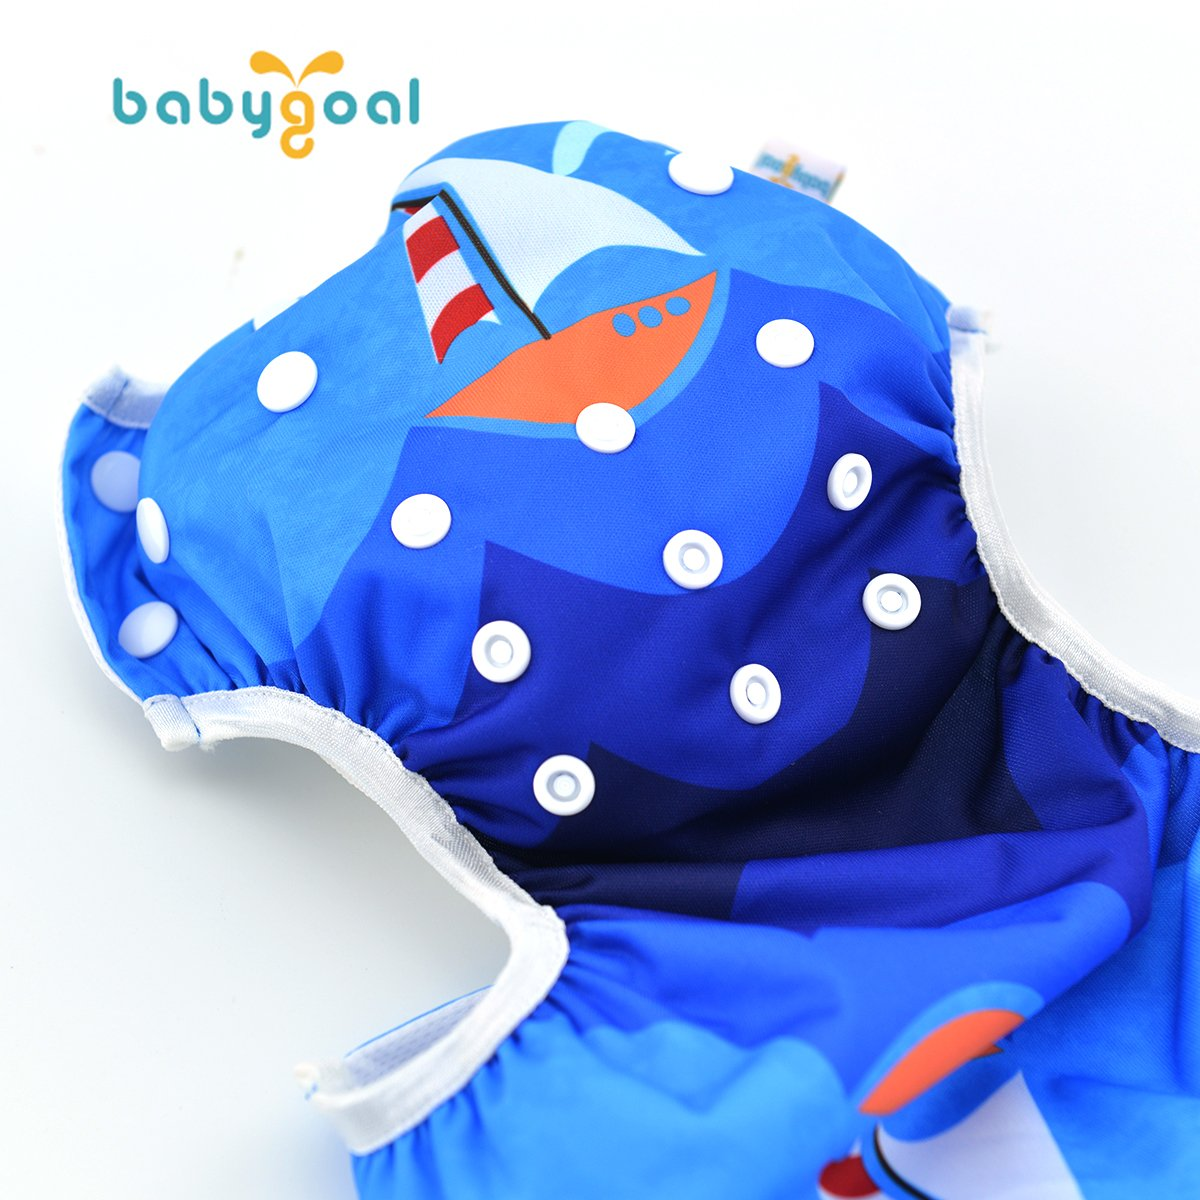 Babygoal Baby Swim diapers, Babygoal Reuseable Washable and Adjustable for Swimming, Outdoor Activities and Daily Use, Fit Babies 0-2 Years 2SWD4041-CA Huapin